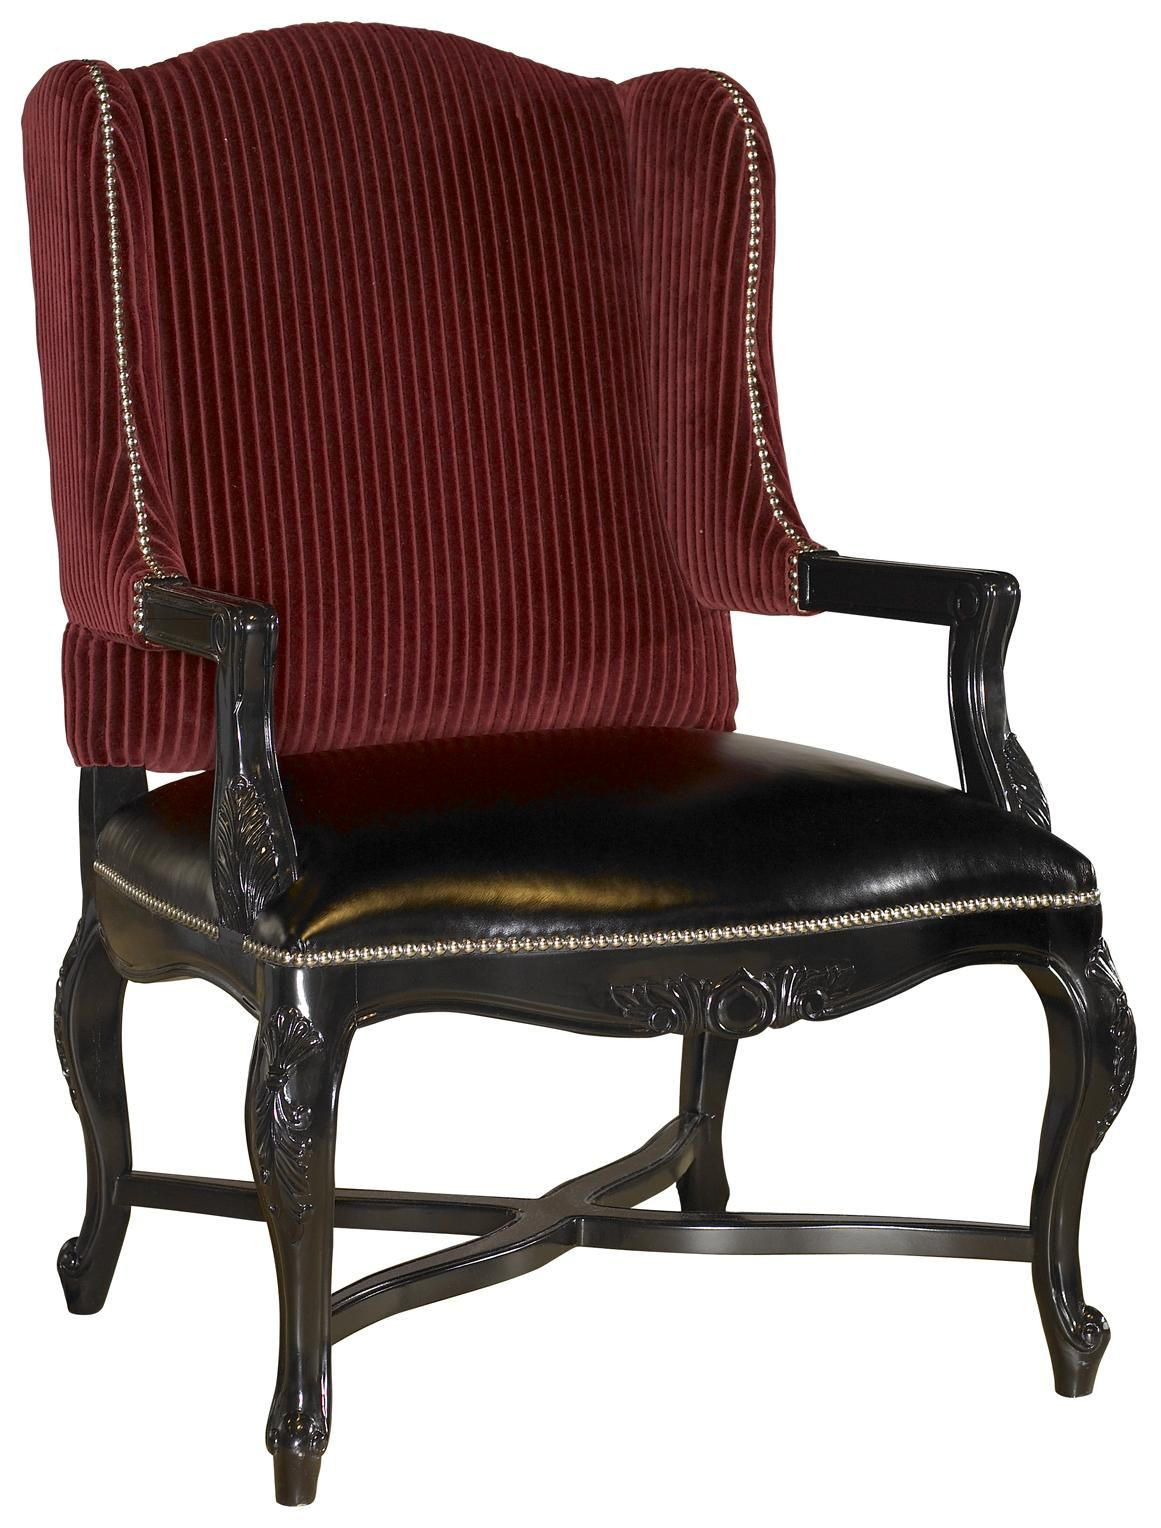 Barclay Square Kendal Wing Back Chair With Exposed Wood And Nailhead Trim By Lexington Home Brands